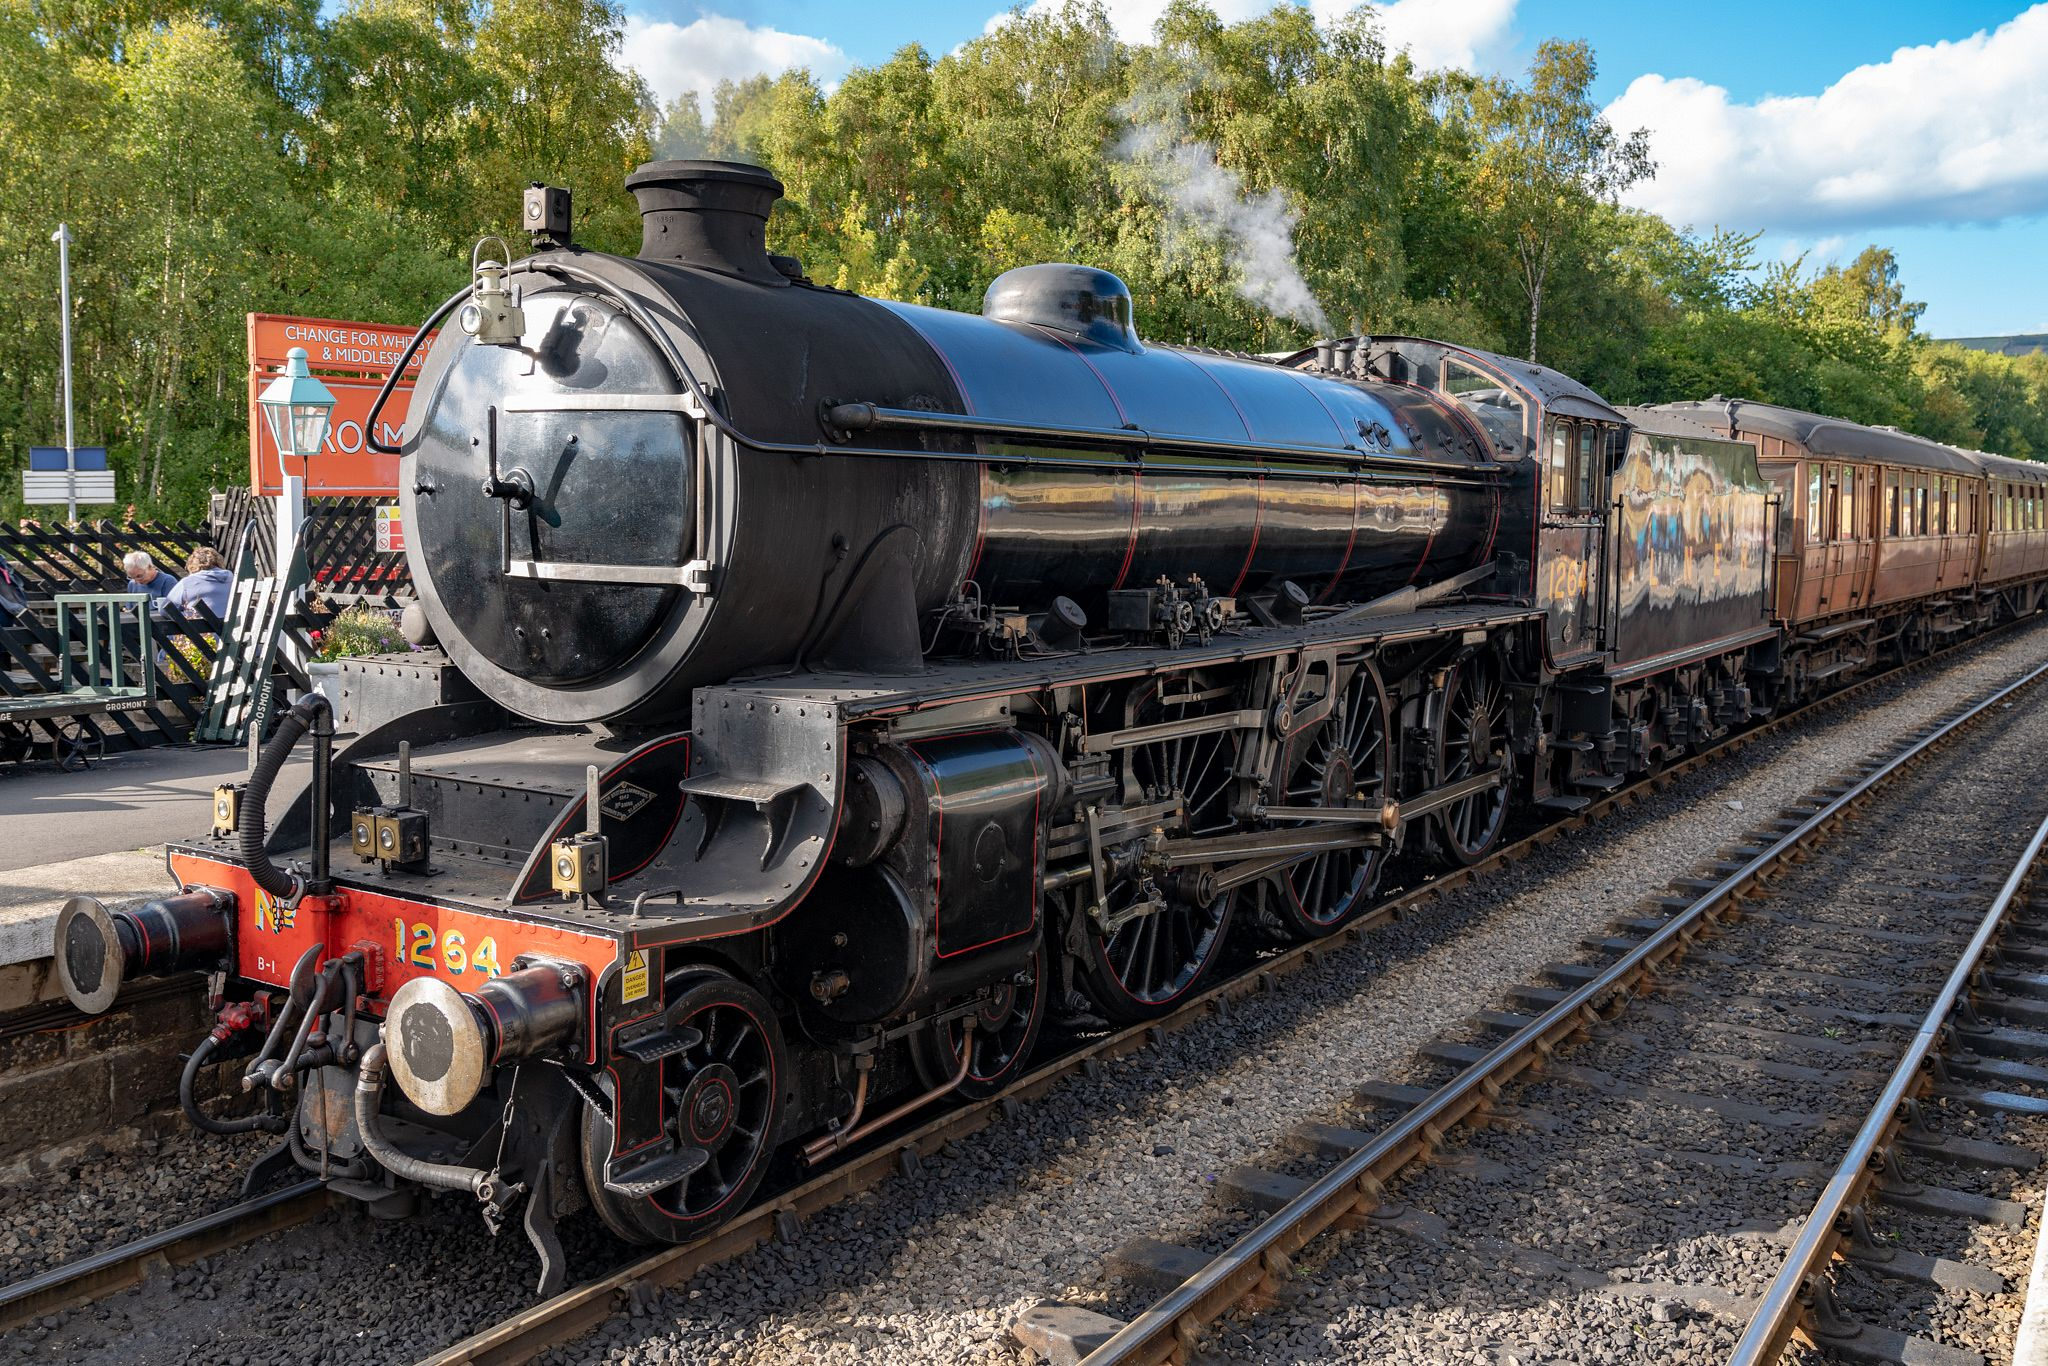 Steam Train on the North Yorkshire Moors Railway